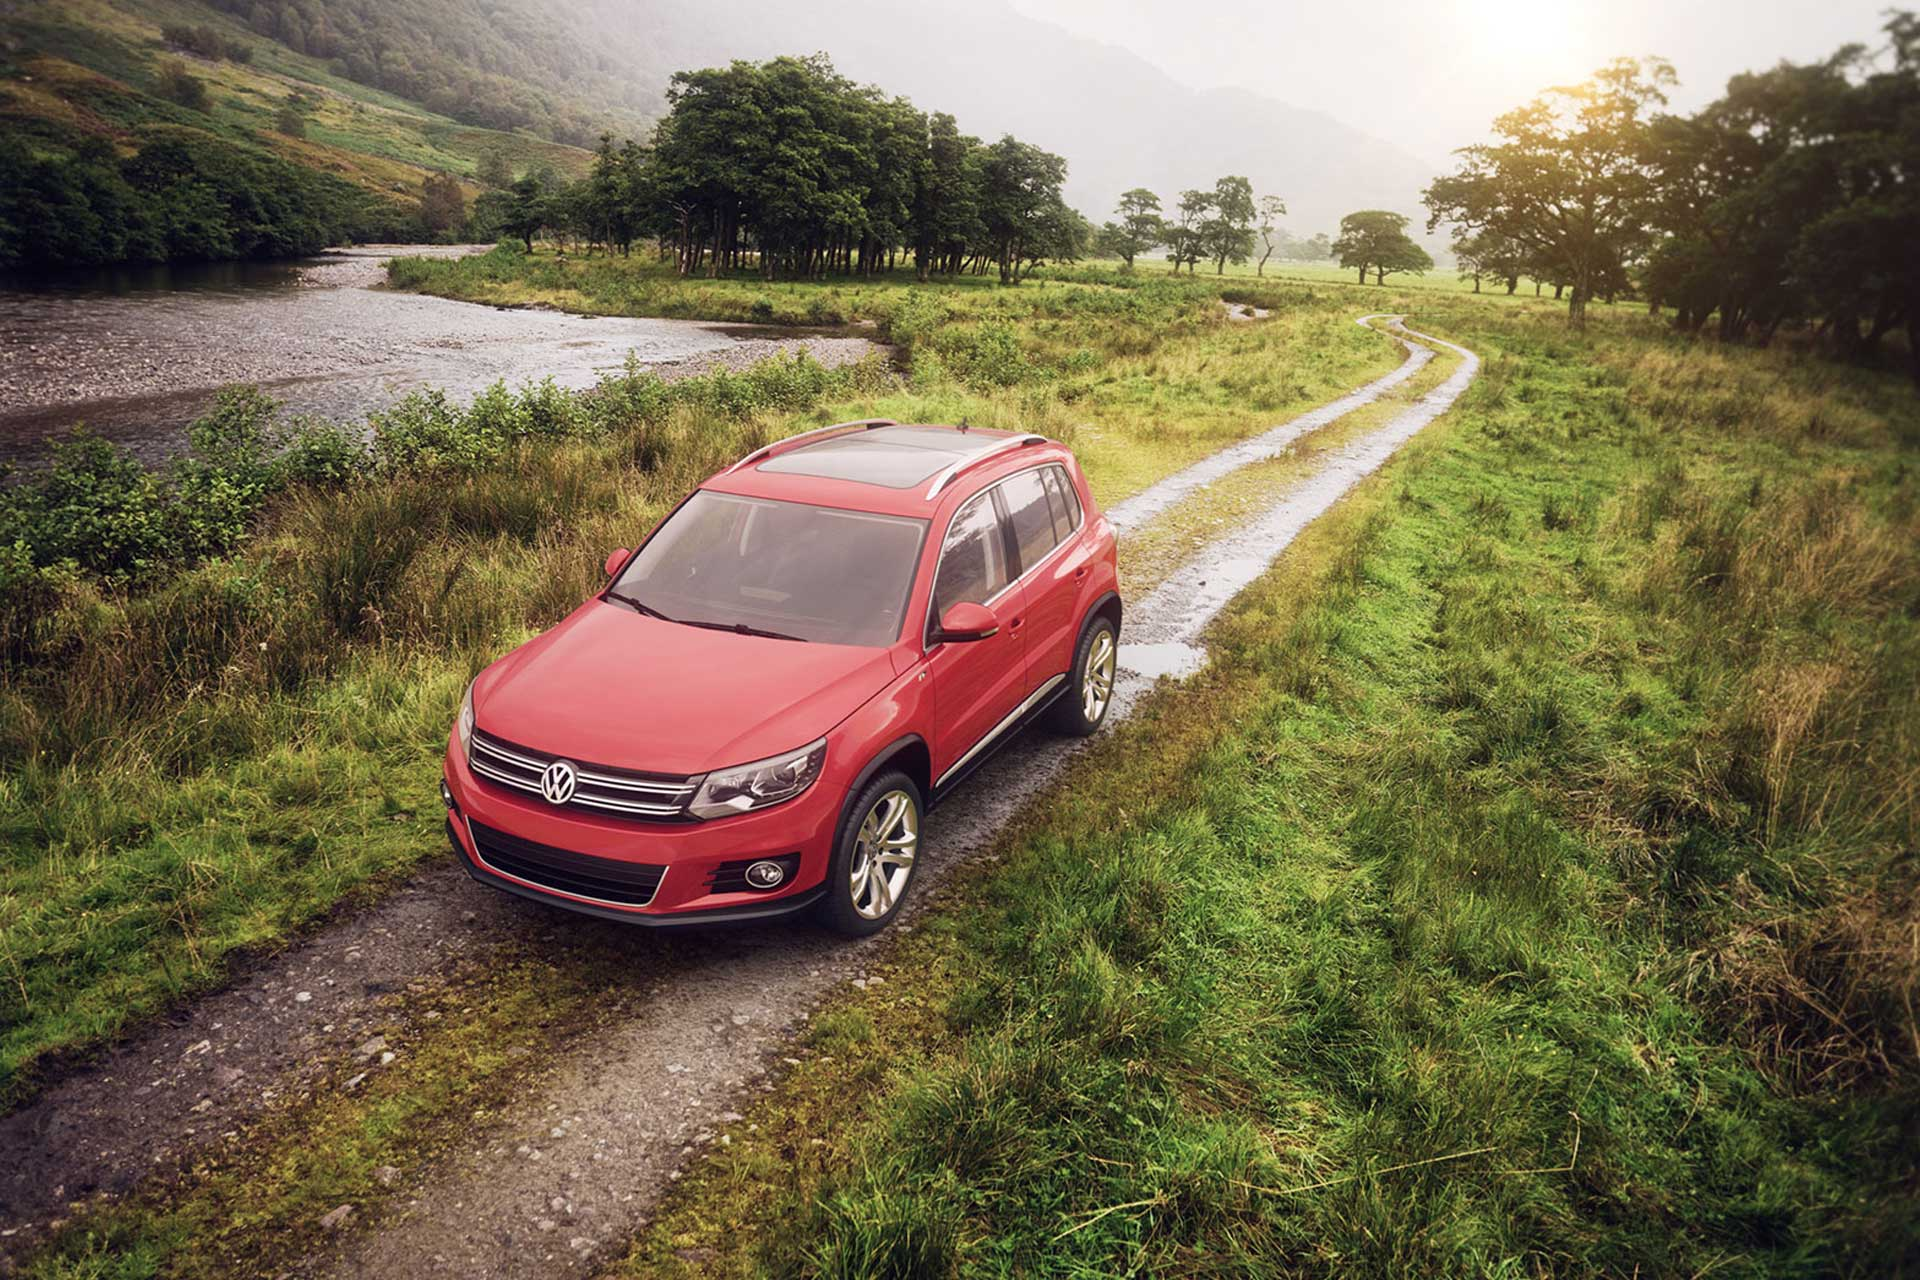 Red Volkswagen Tiguan car driving down a gravel road in the country